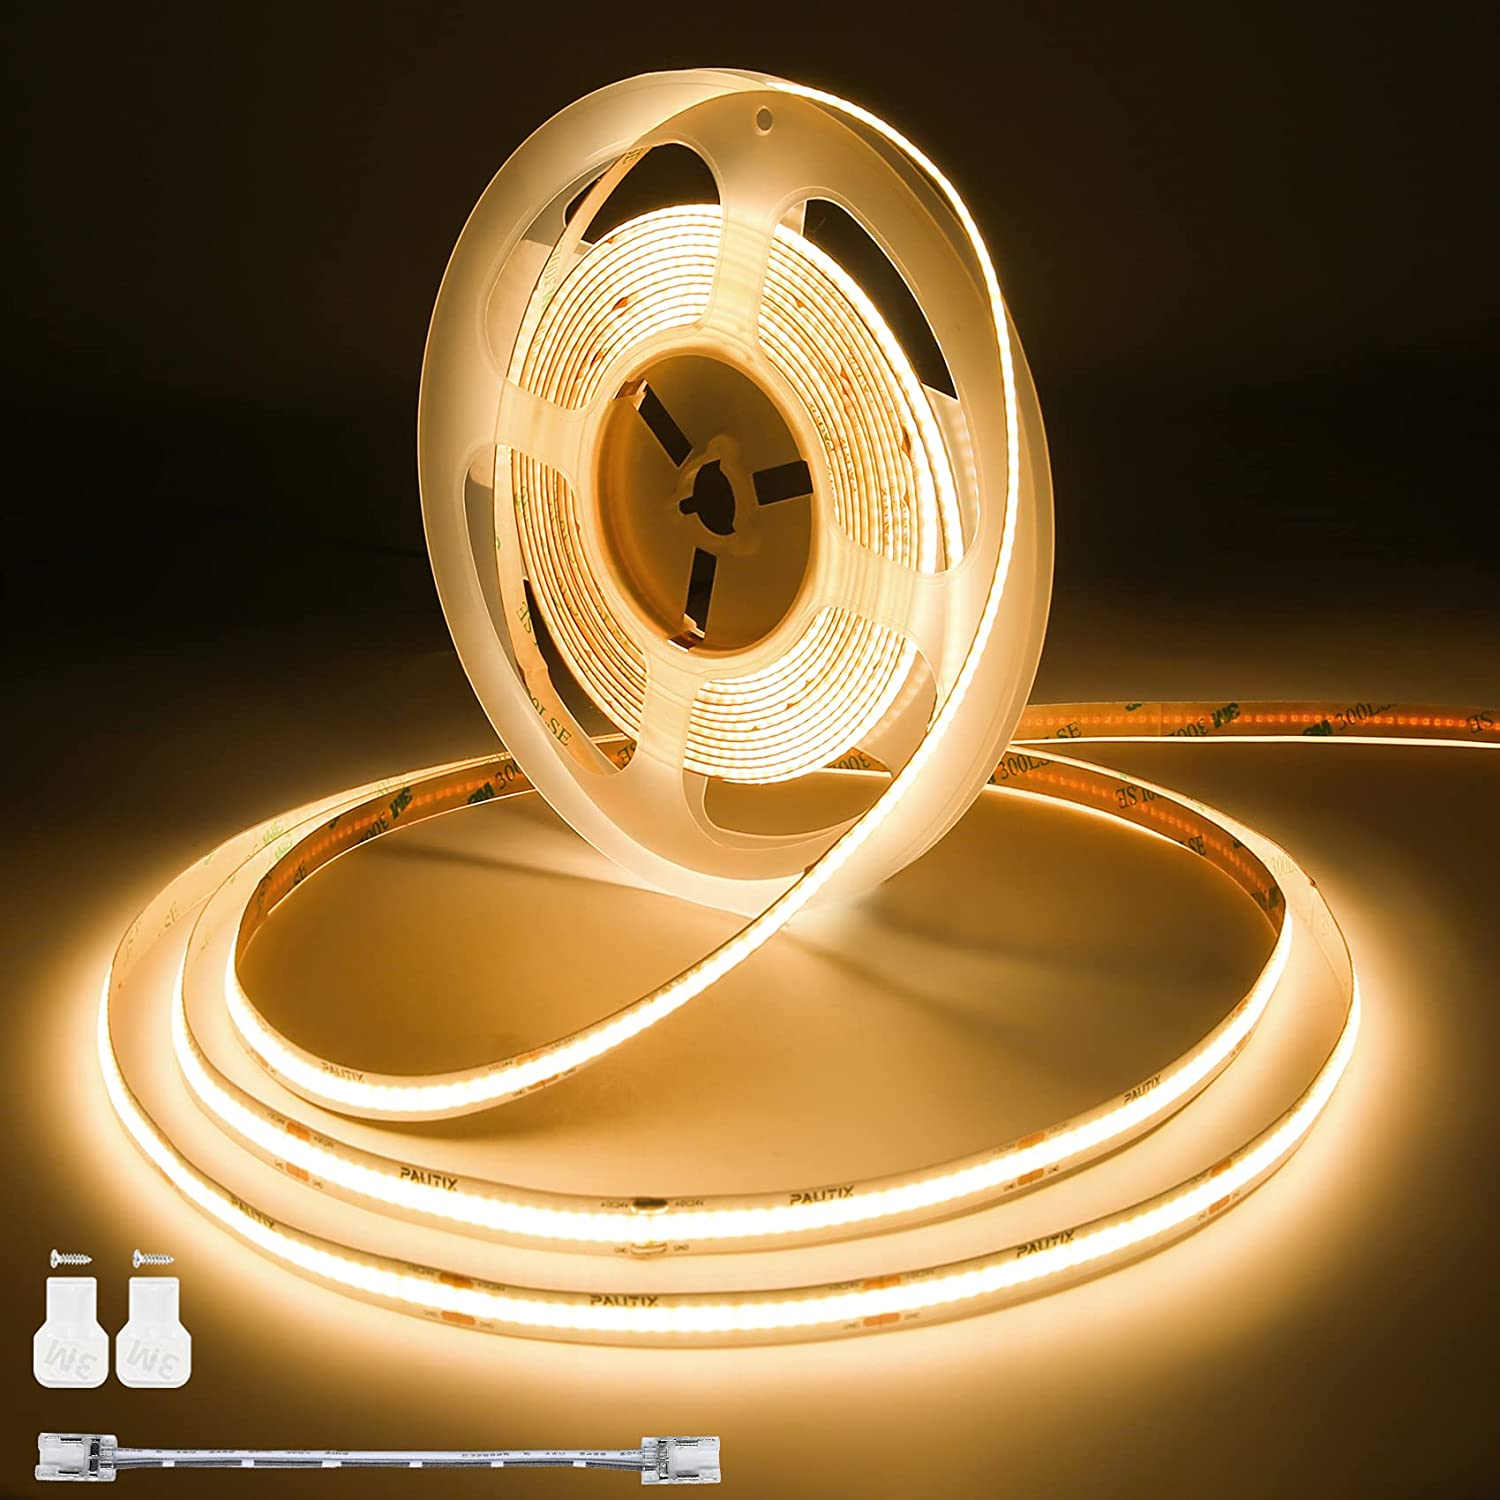 COB LED Strip Lights Super Bright,PAUTIX 20ft/6.1m Warm White 2700K CRI90+ Flexible LED Tape,DC24V for Cabinet Home DIY Lighting Projects with 1pcs COB Connector Wire(Power Supply Not Included)